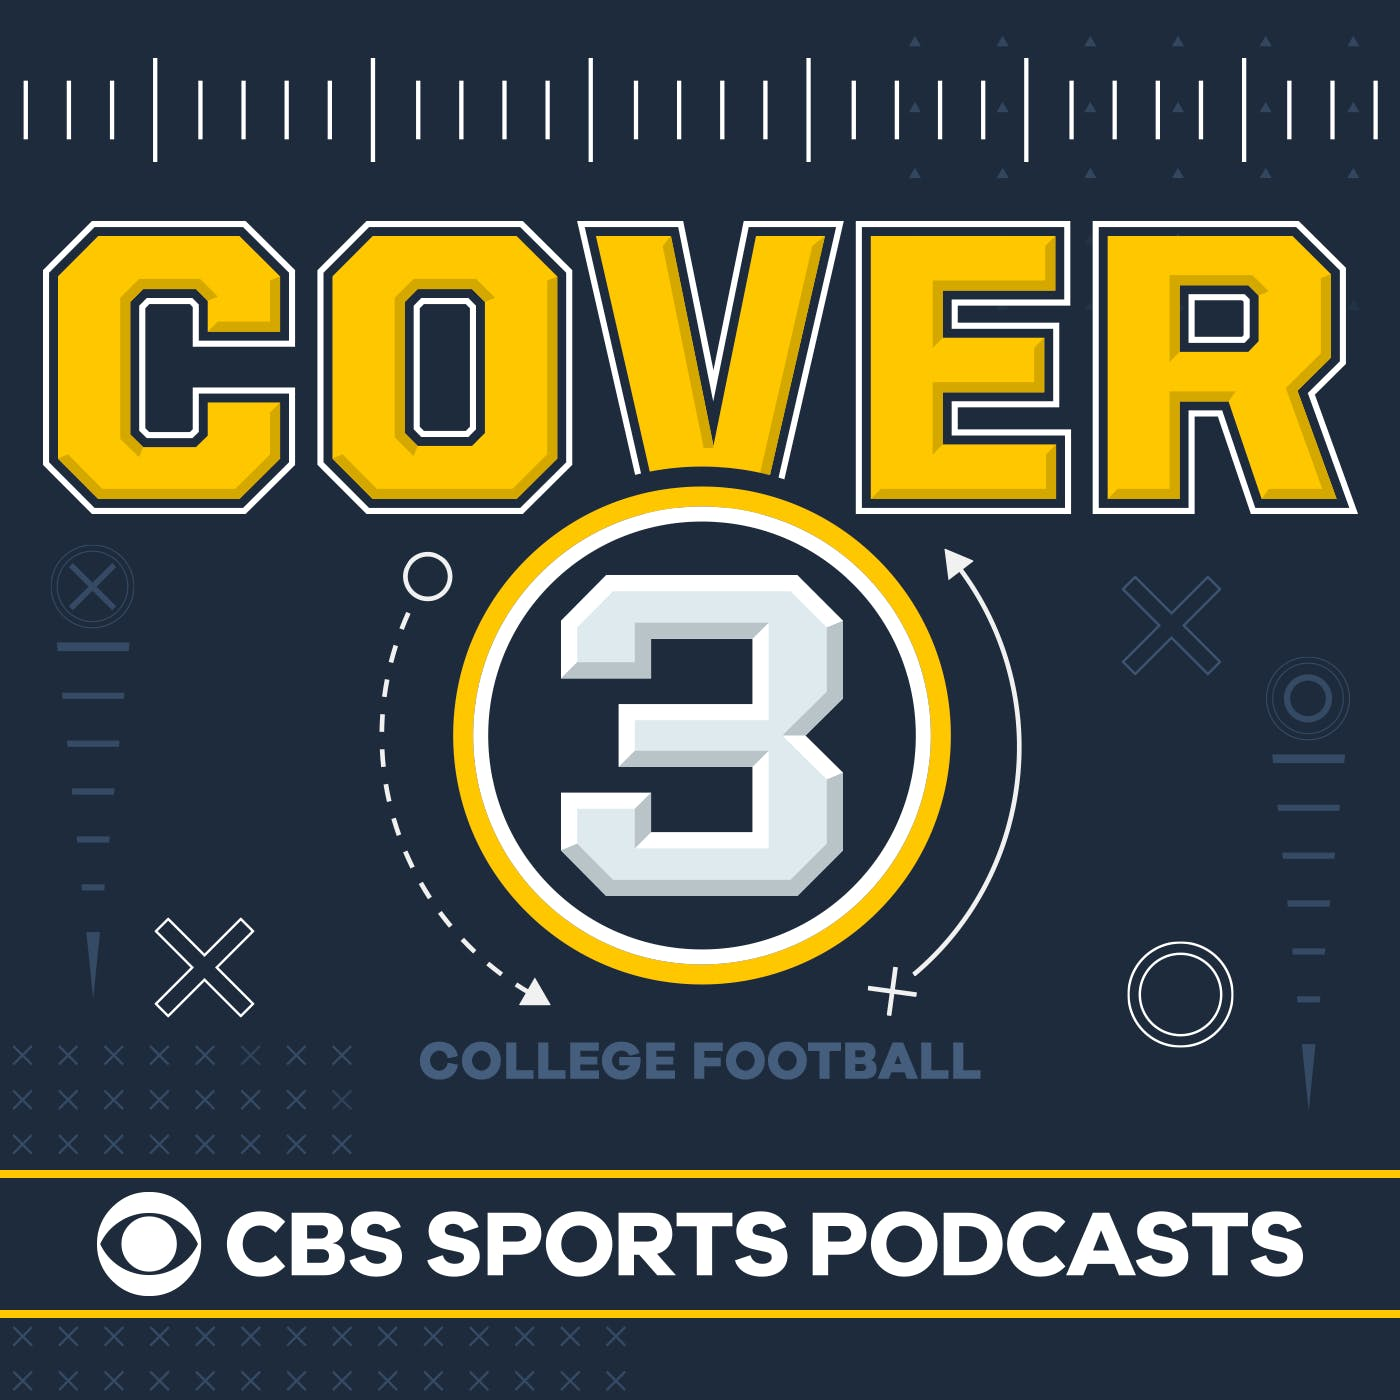 Cover 3 College Football podcast show image